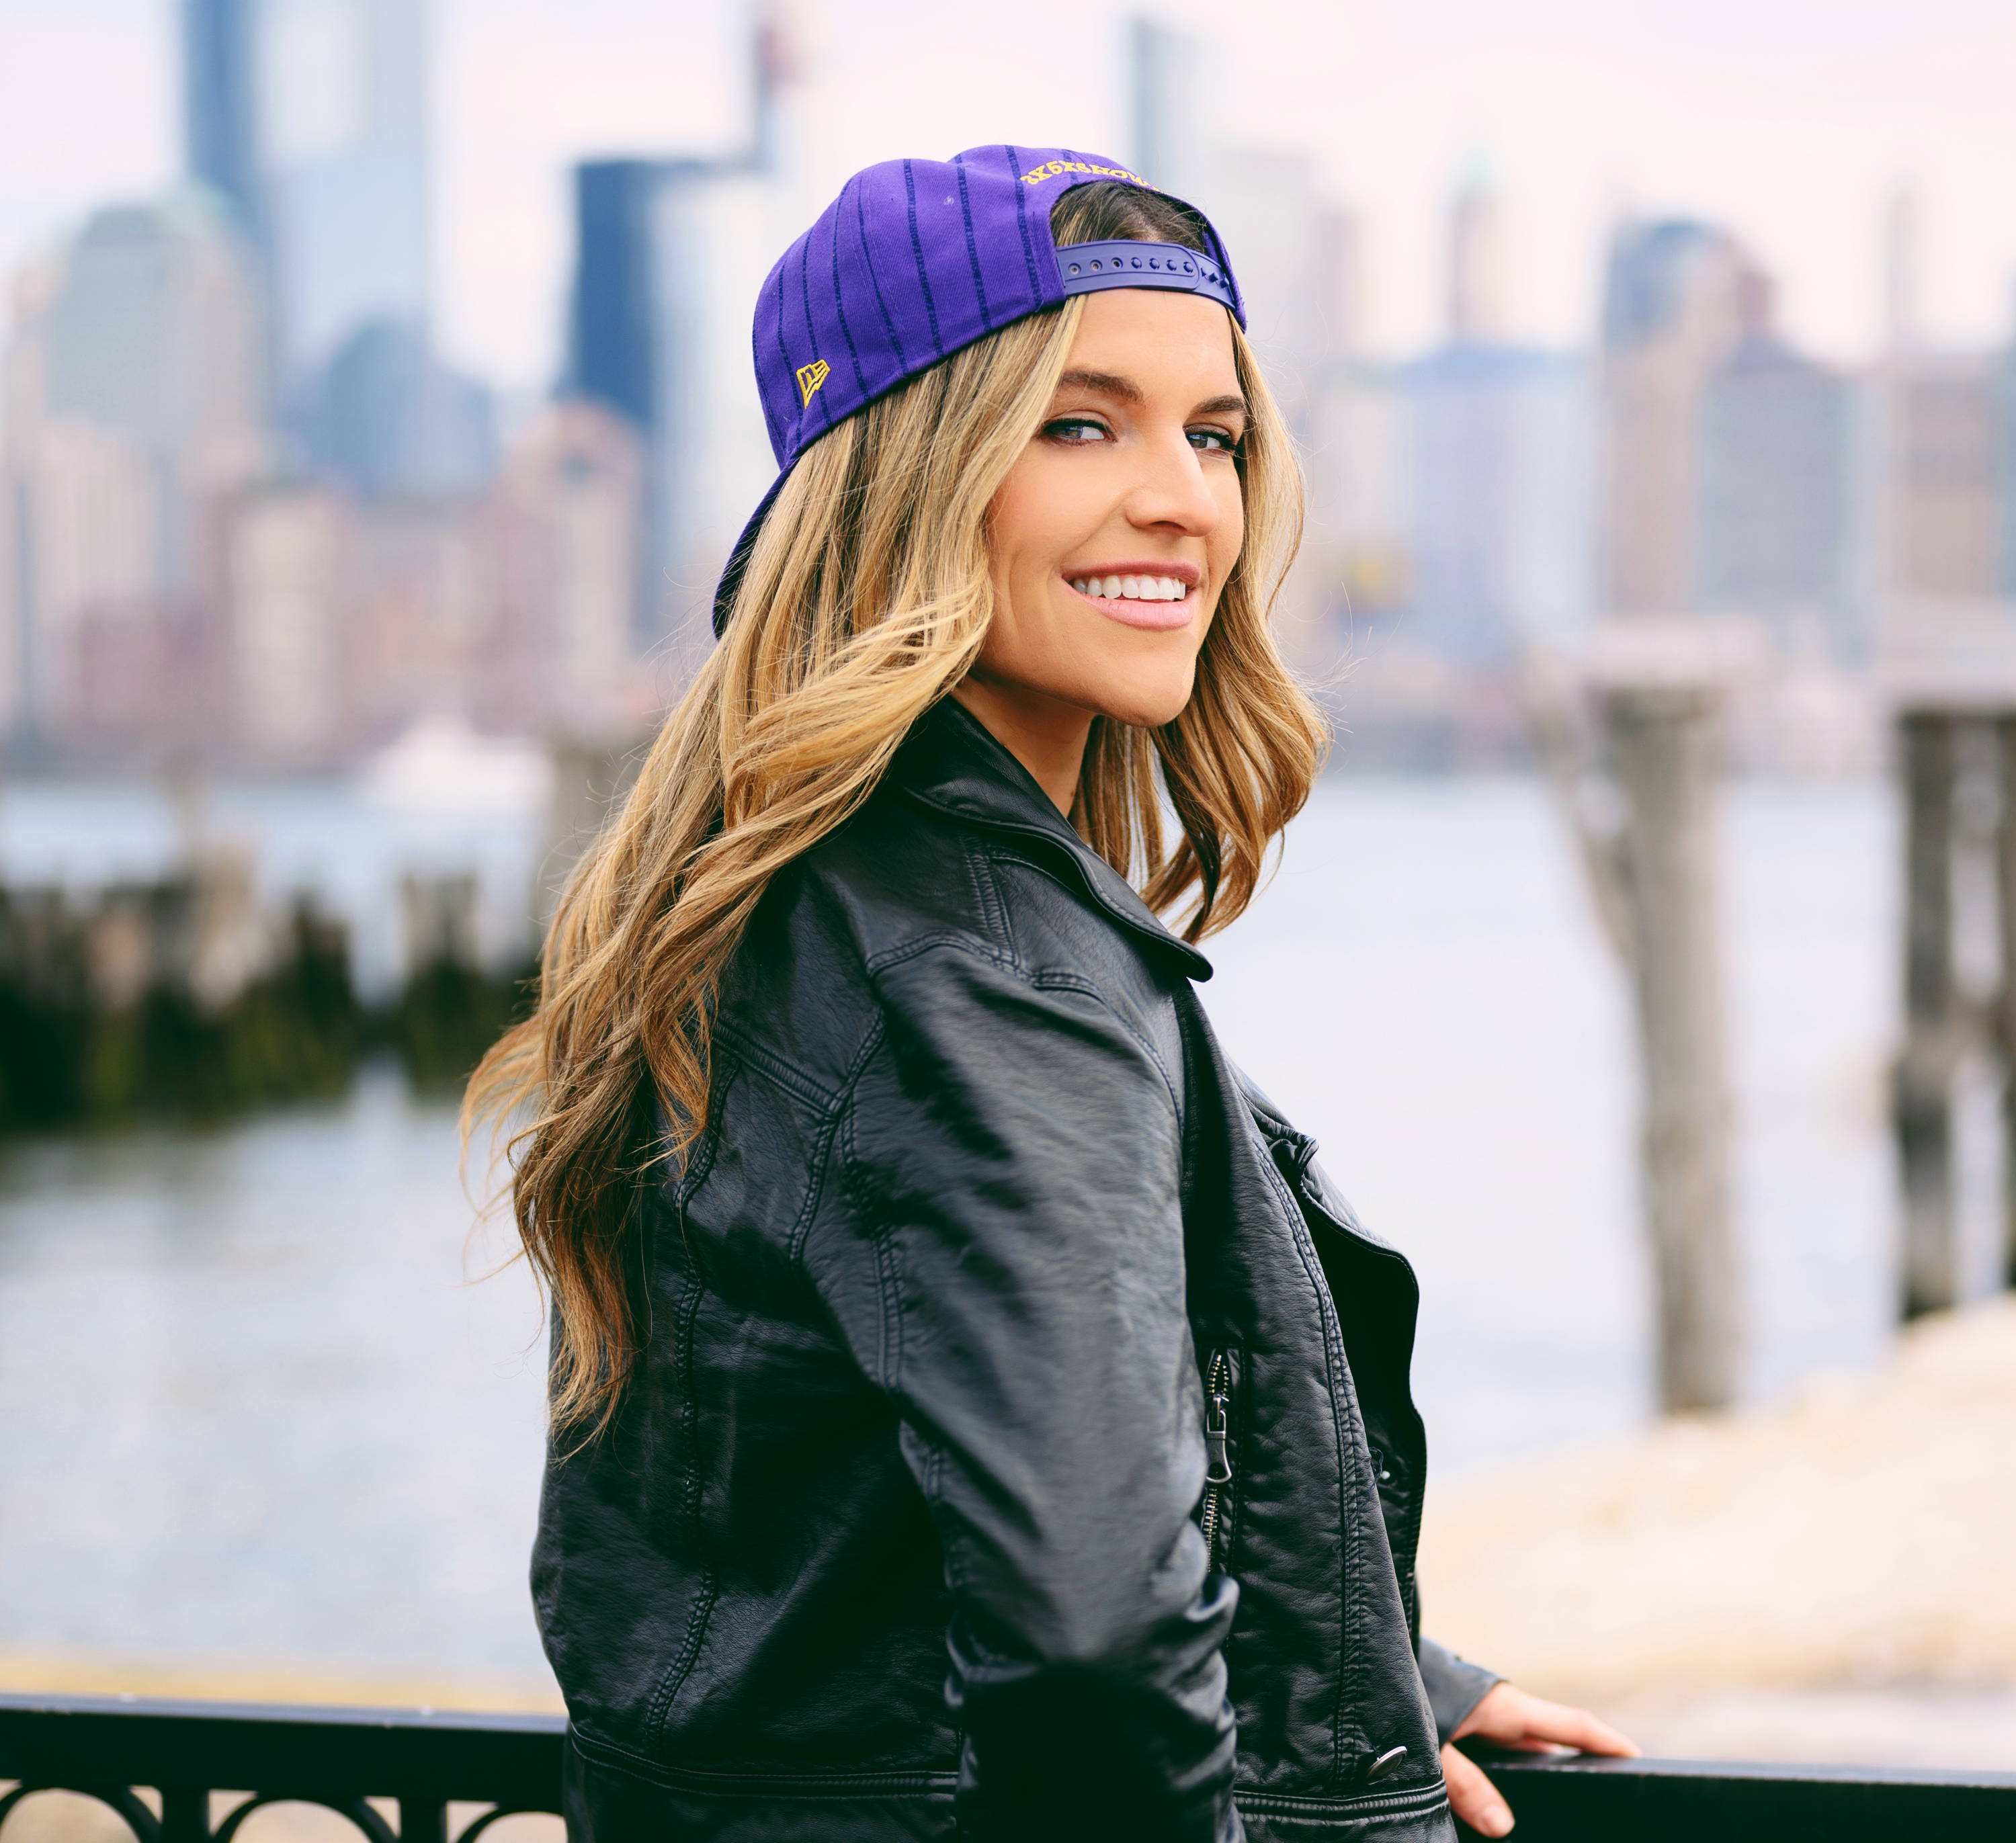 Annie ODonnell pictured in New York at sunset